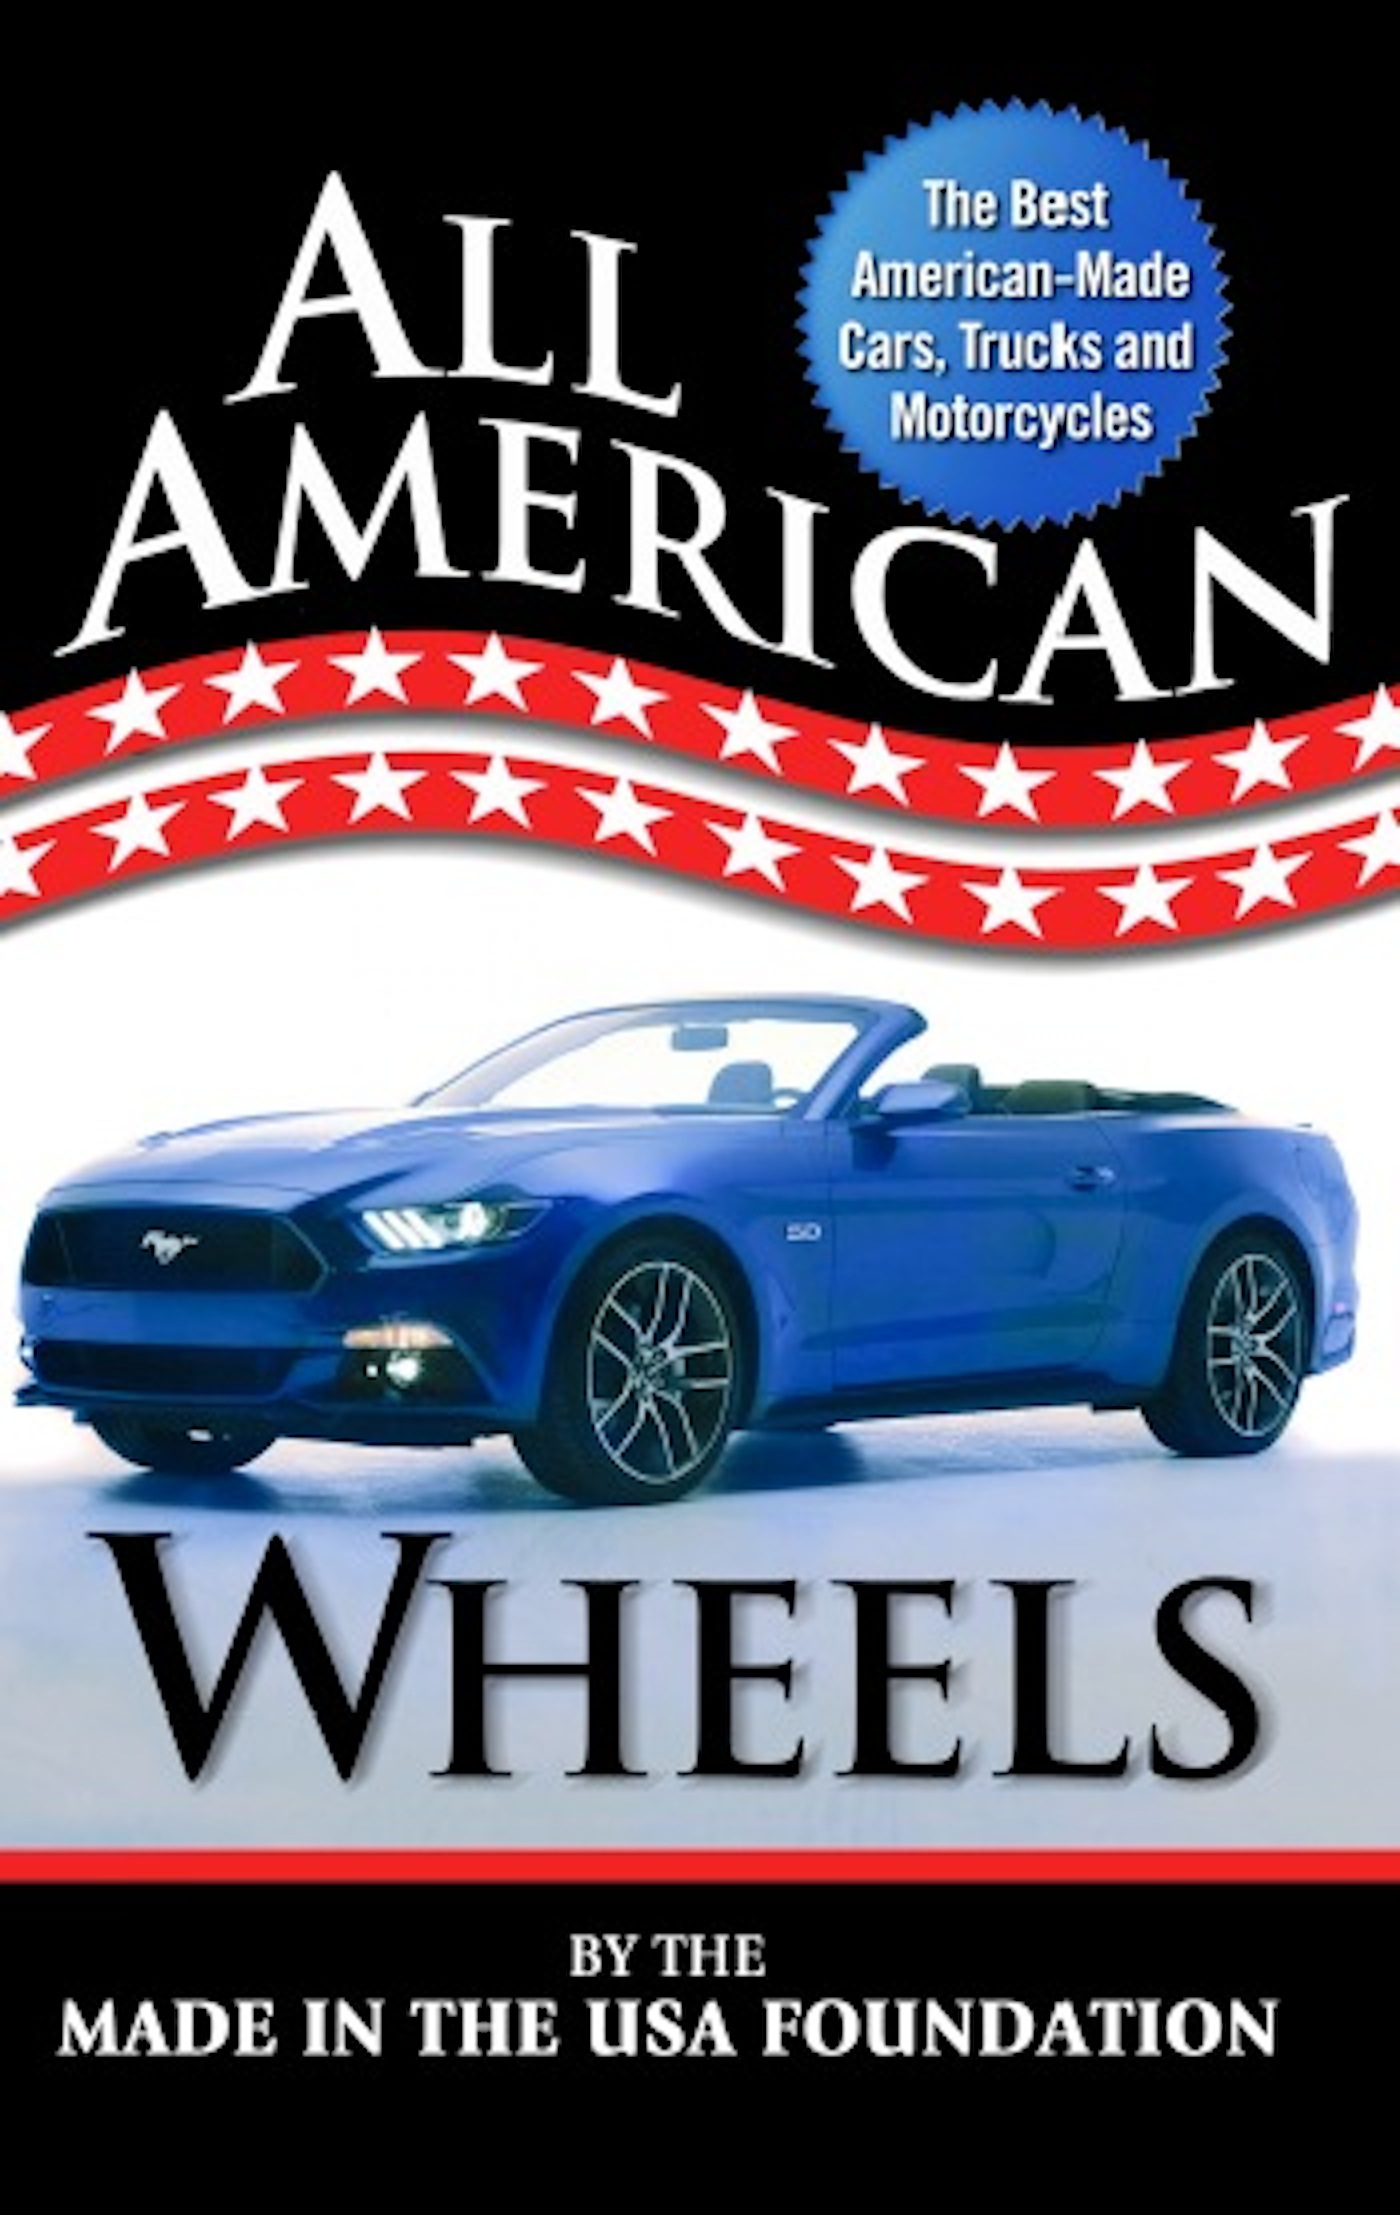 All American Wheels logo